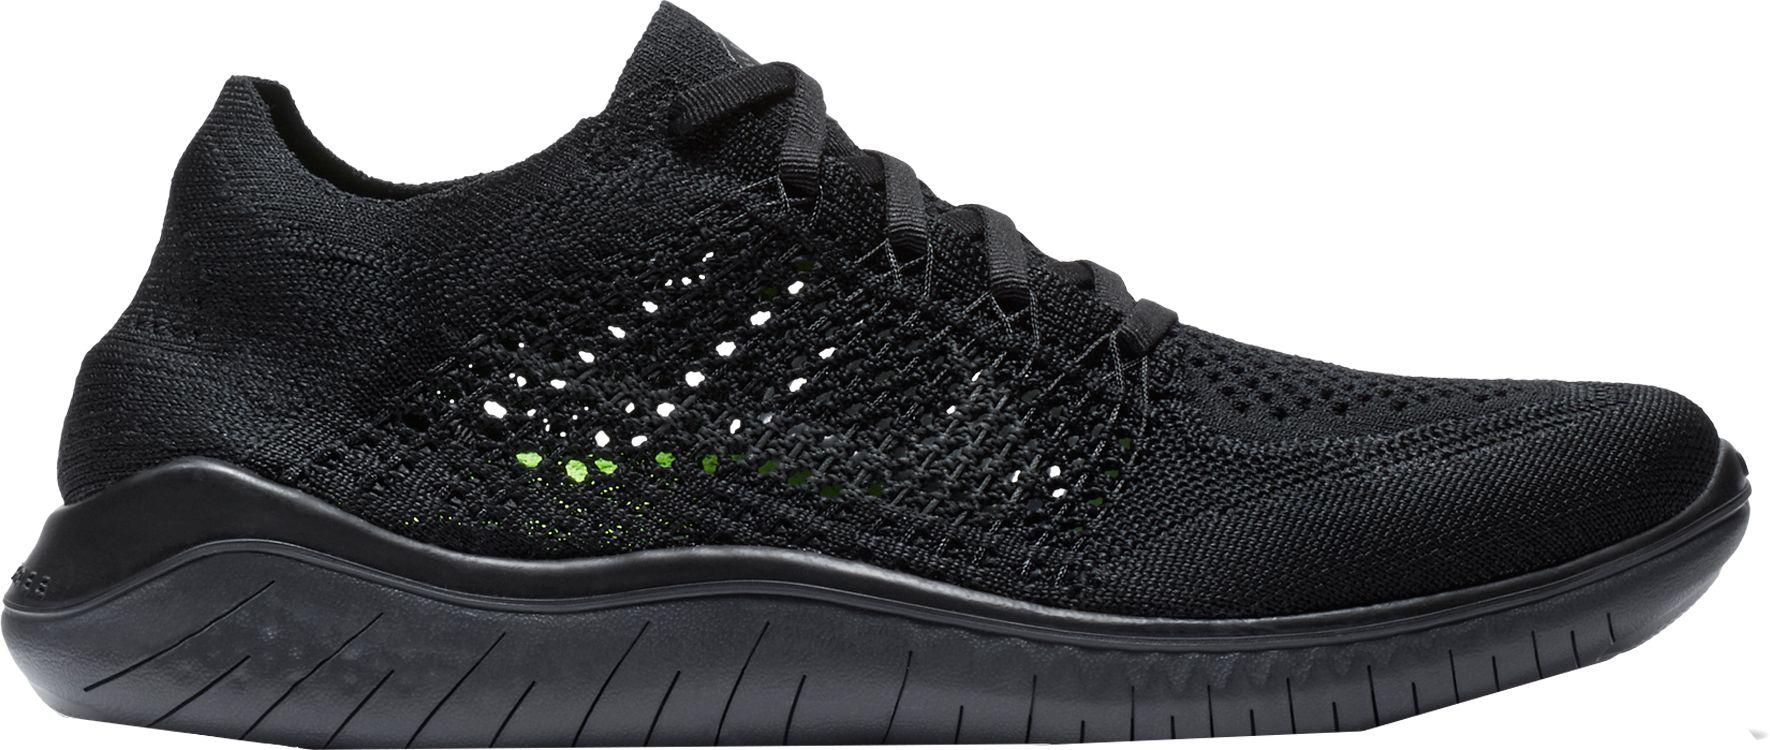 a39b012317e14 ... clearance nike black free rn flyknit 2018 running shoes lyst 90fd9 dfc37